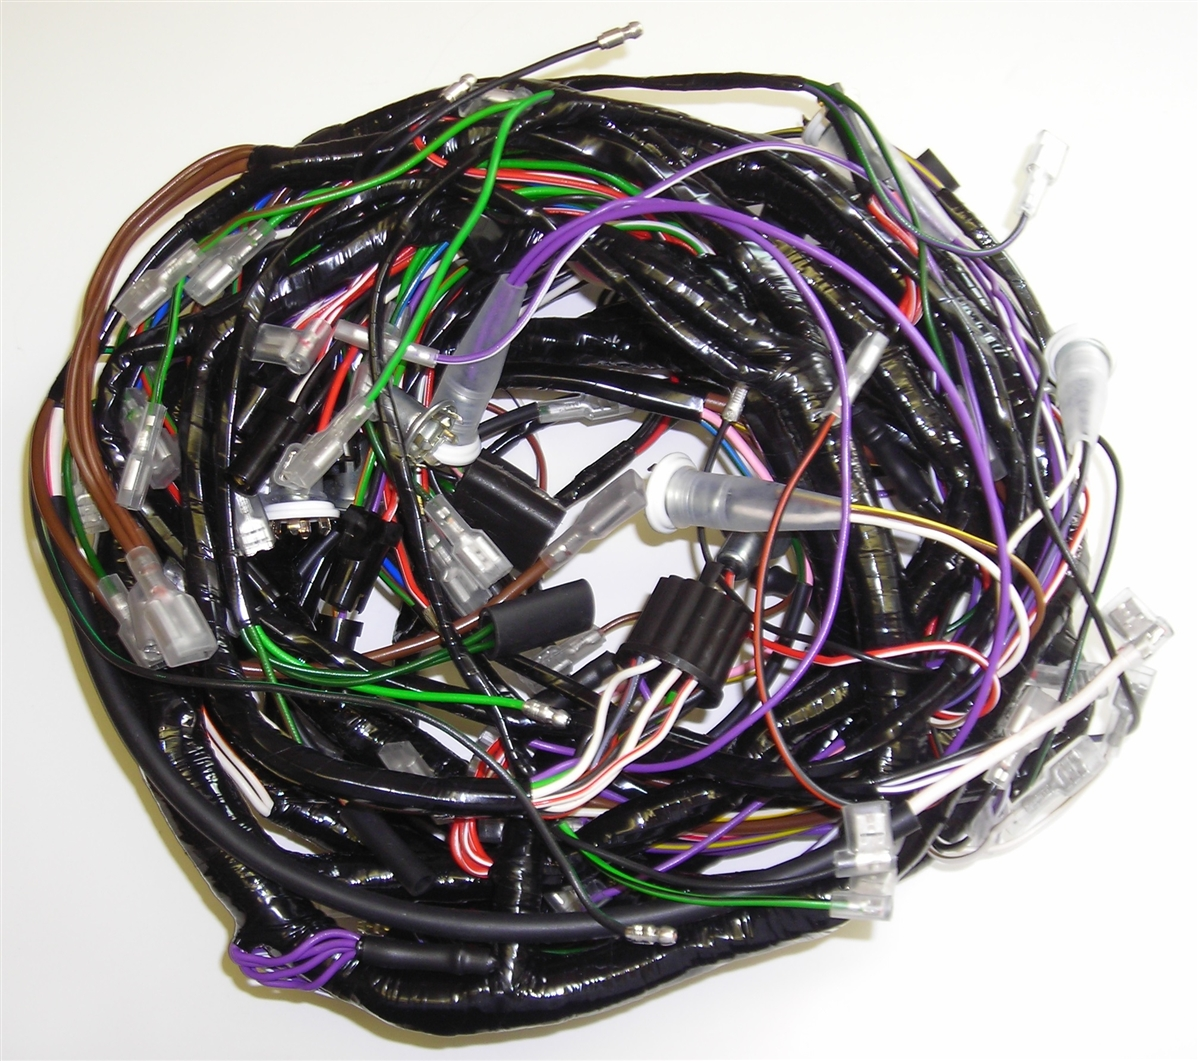 897 2?1371127001 wiring harness triumph tr6 triumph tr6 wiring harness at aneh.co